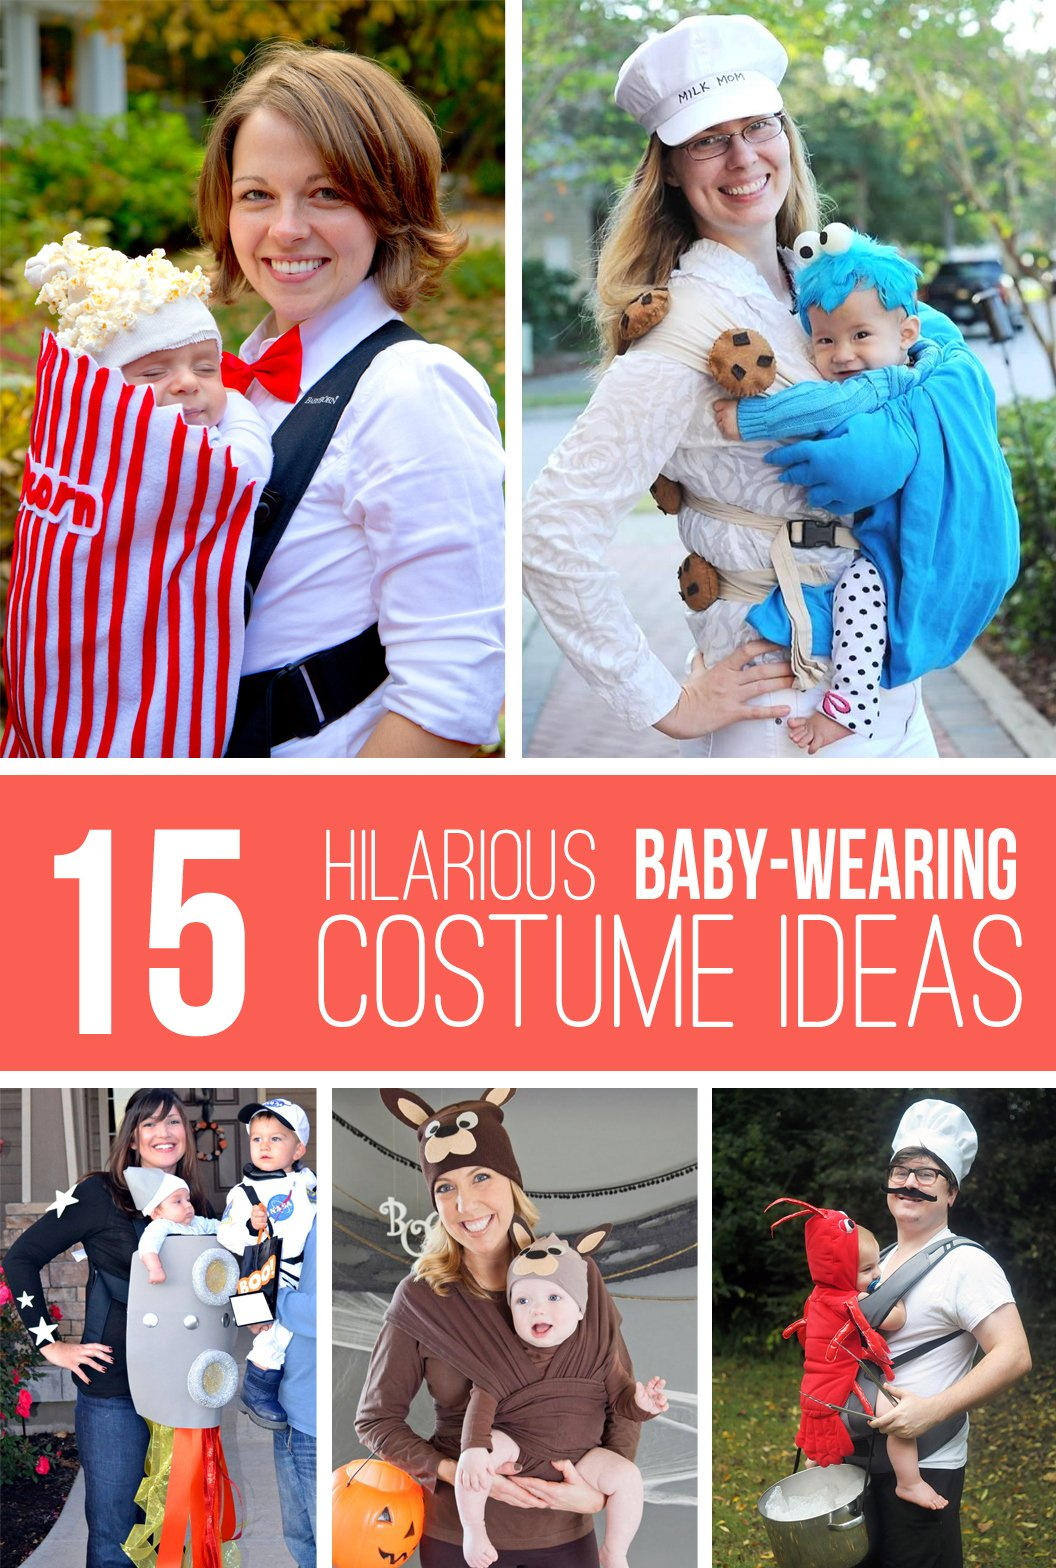 15 hilarious baby-wearing costume ideas!